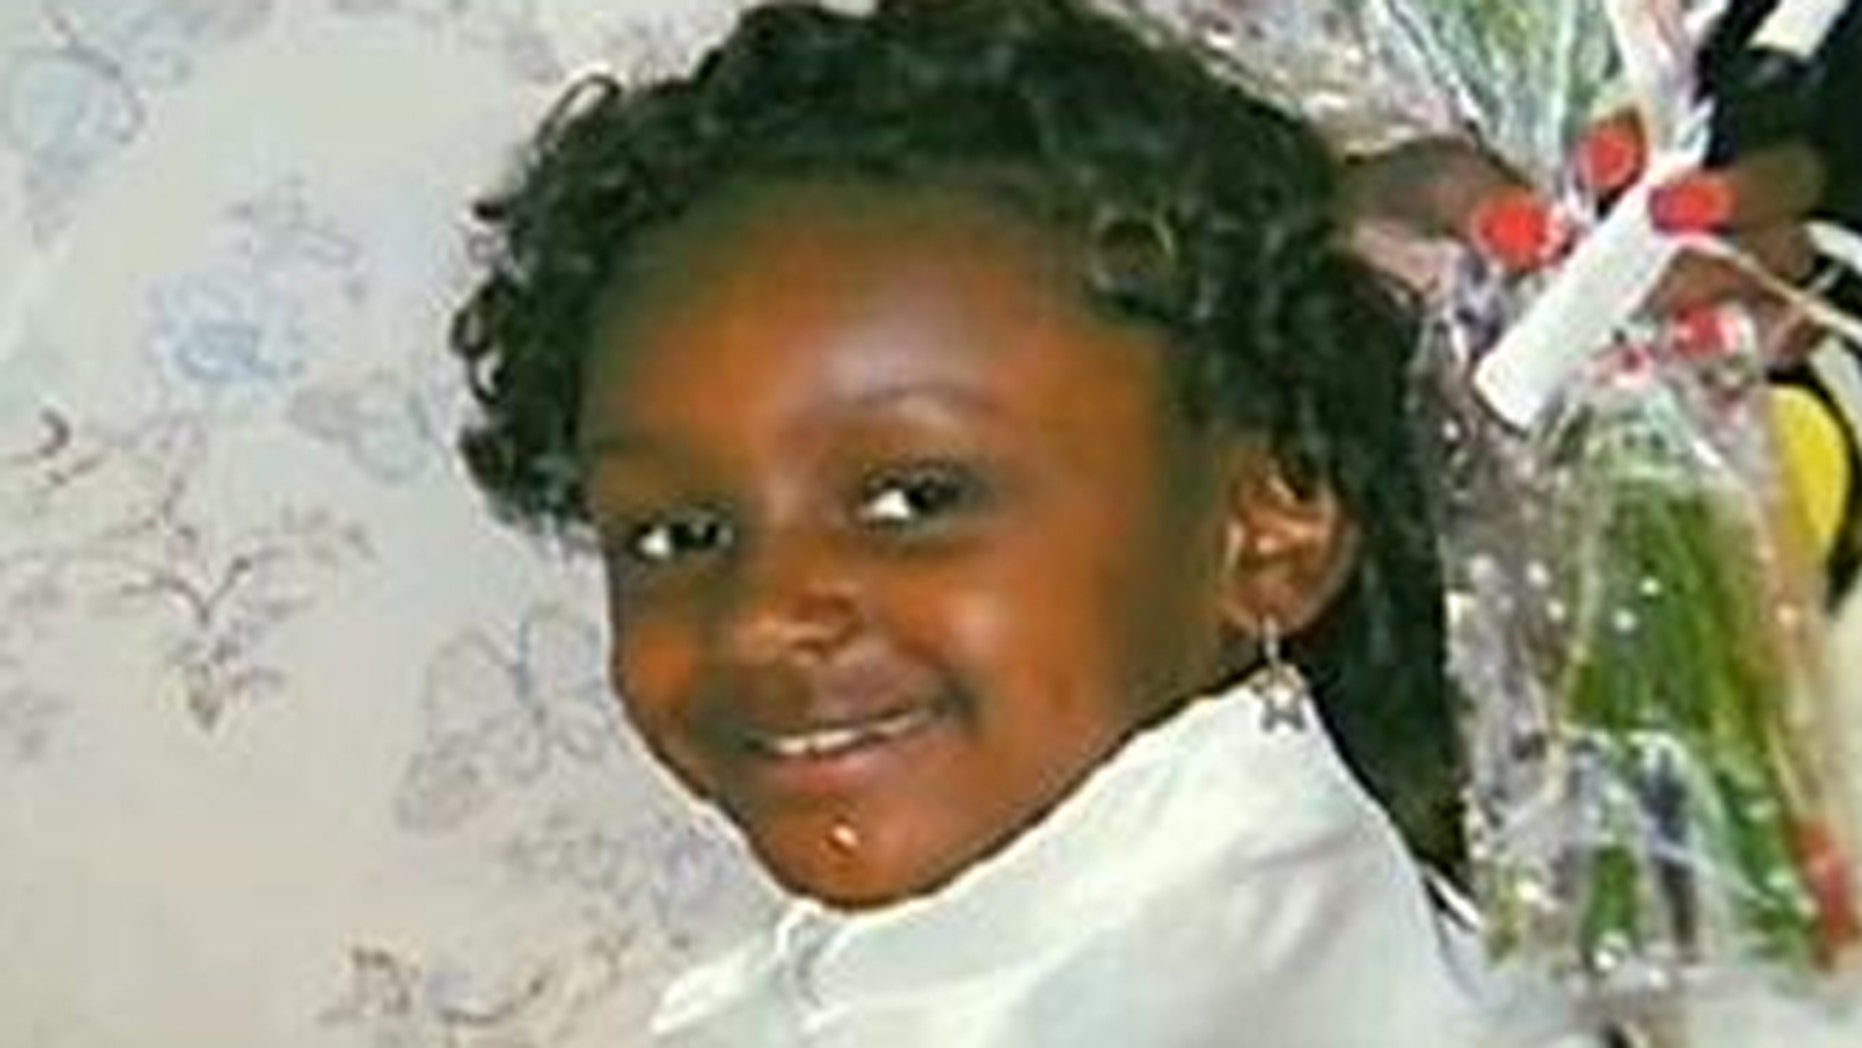 After several shootings in her neighborhood, Heaven Sutton had begged her mother to move.